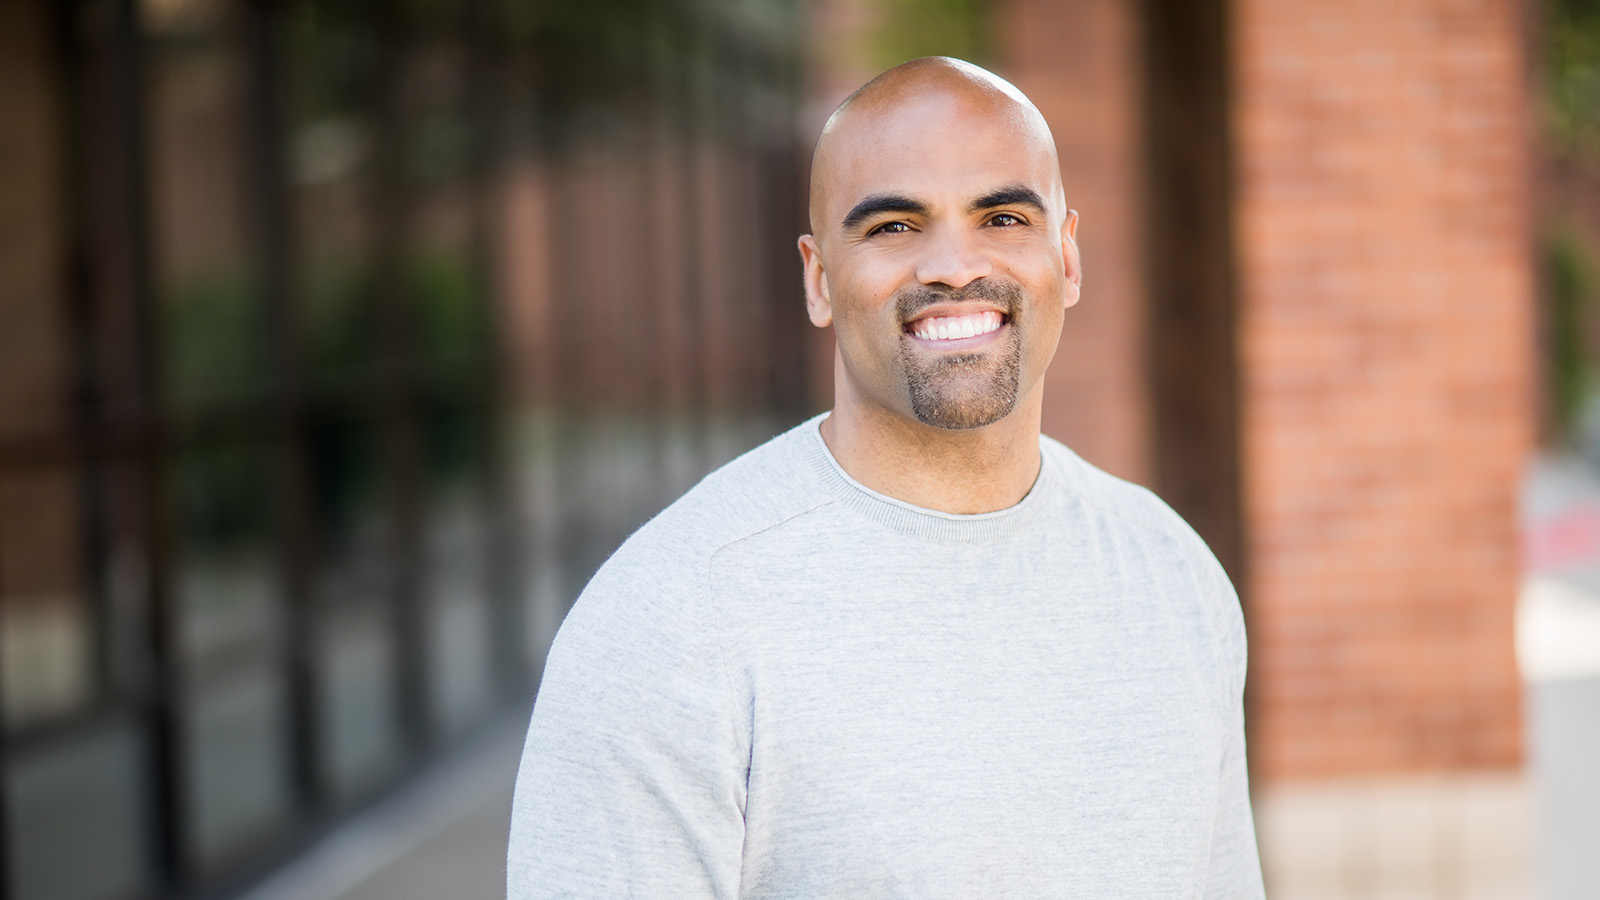 Corporate Equality Index >> HRC Endorses Colin Allred for U.S. Congress | Human Rights Campaign